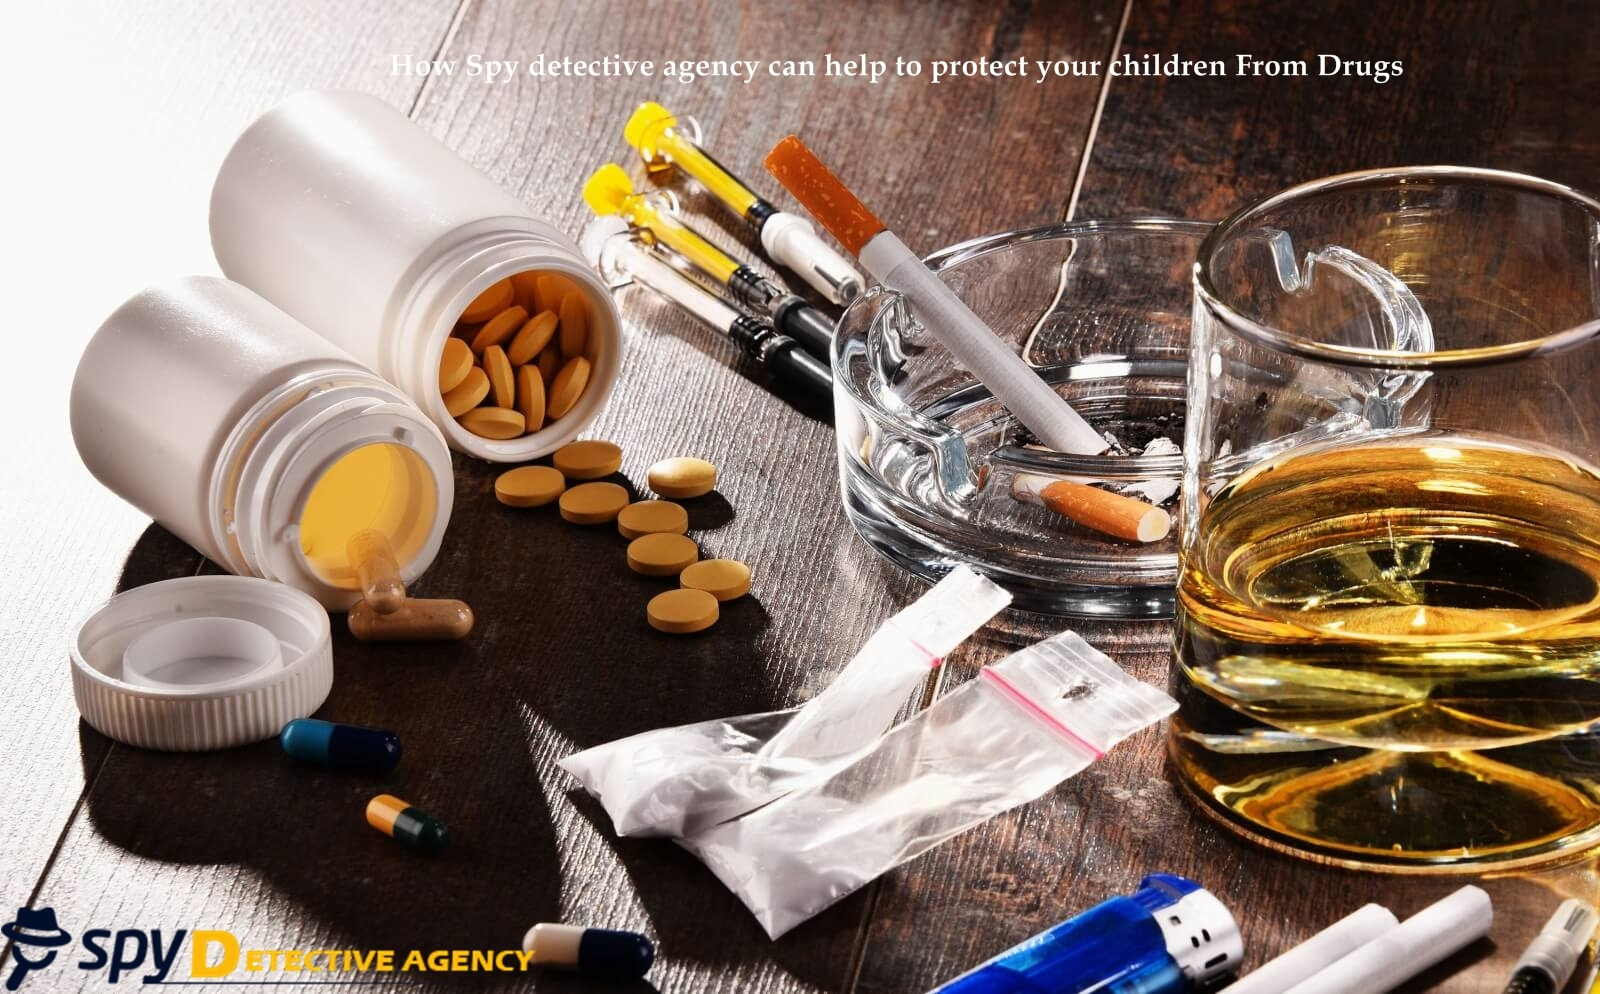 How Spy detective agency can helps protecting your children From Drugs